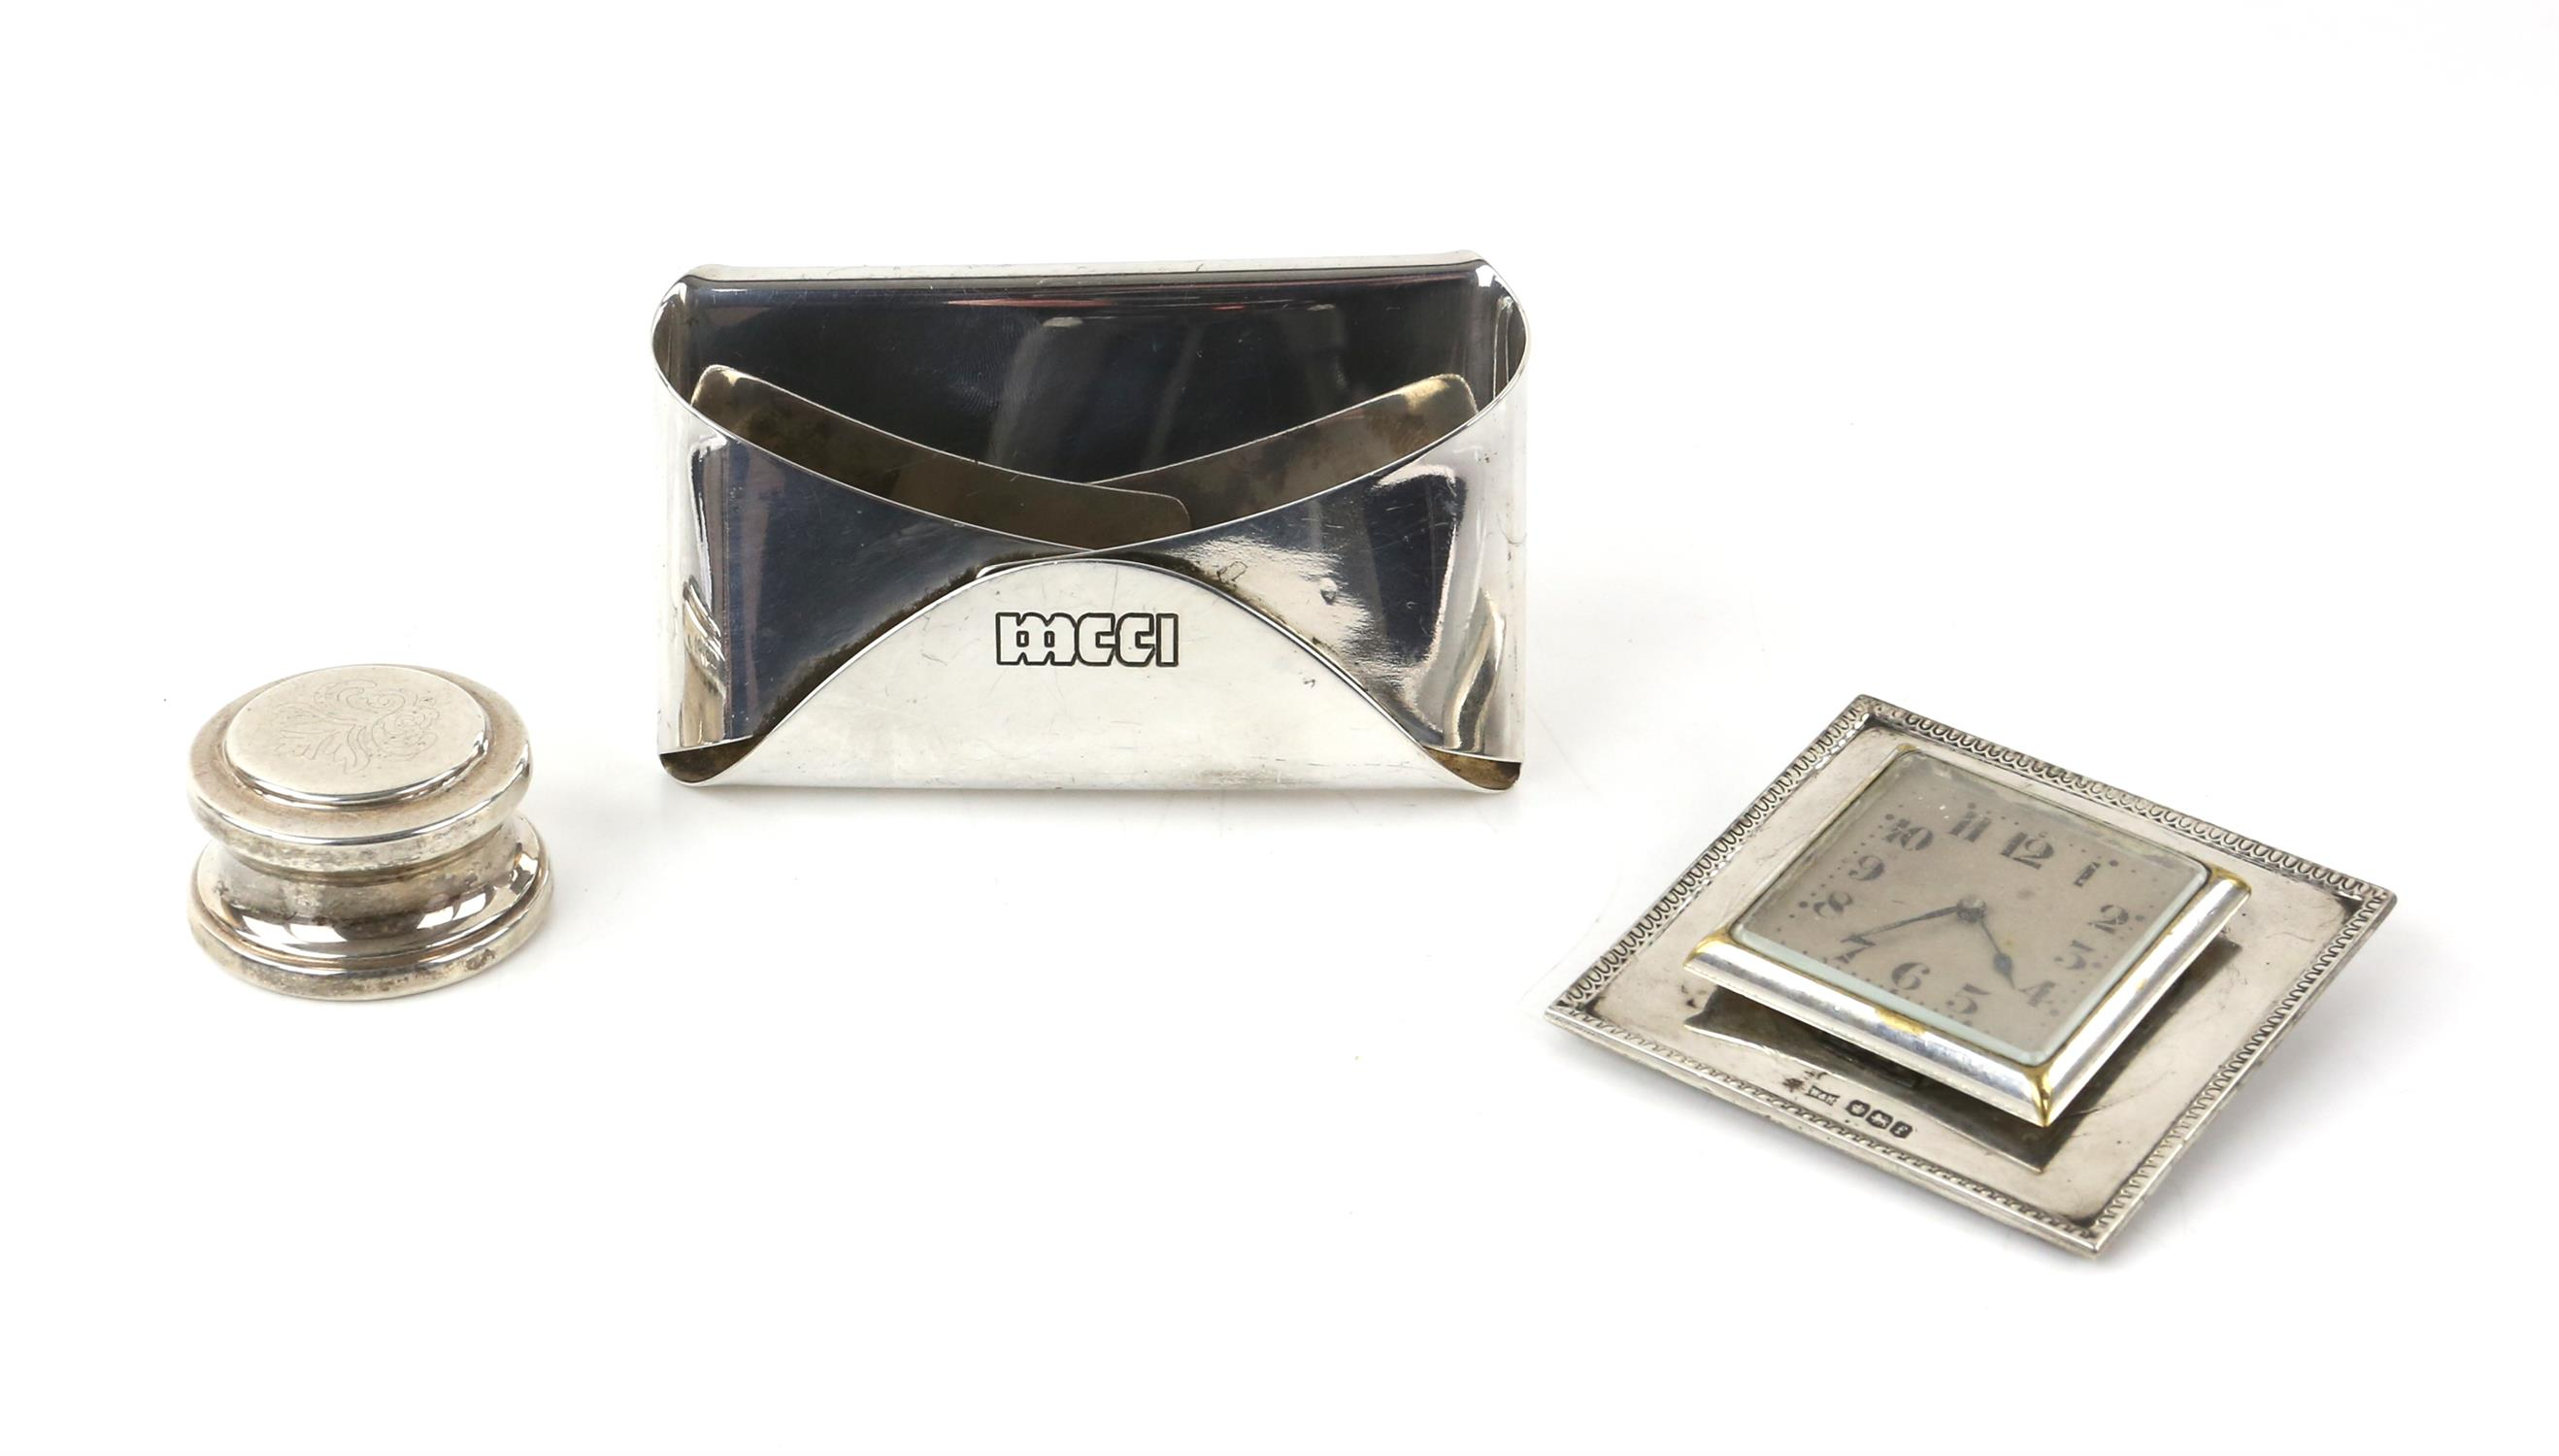 Walker and hall silver framed clock, an Indian silver white metal desk top card holder and a